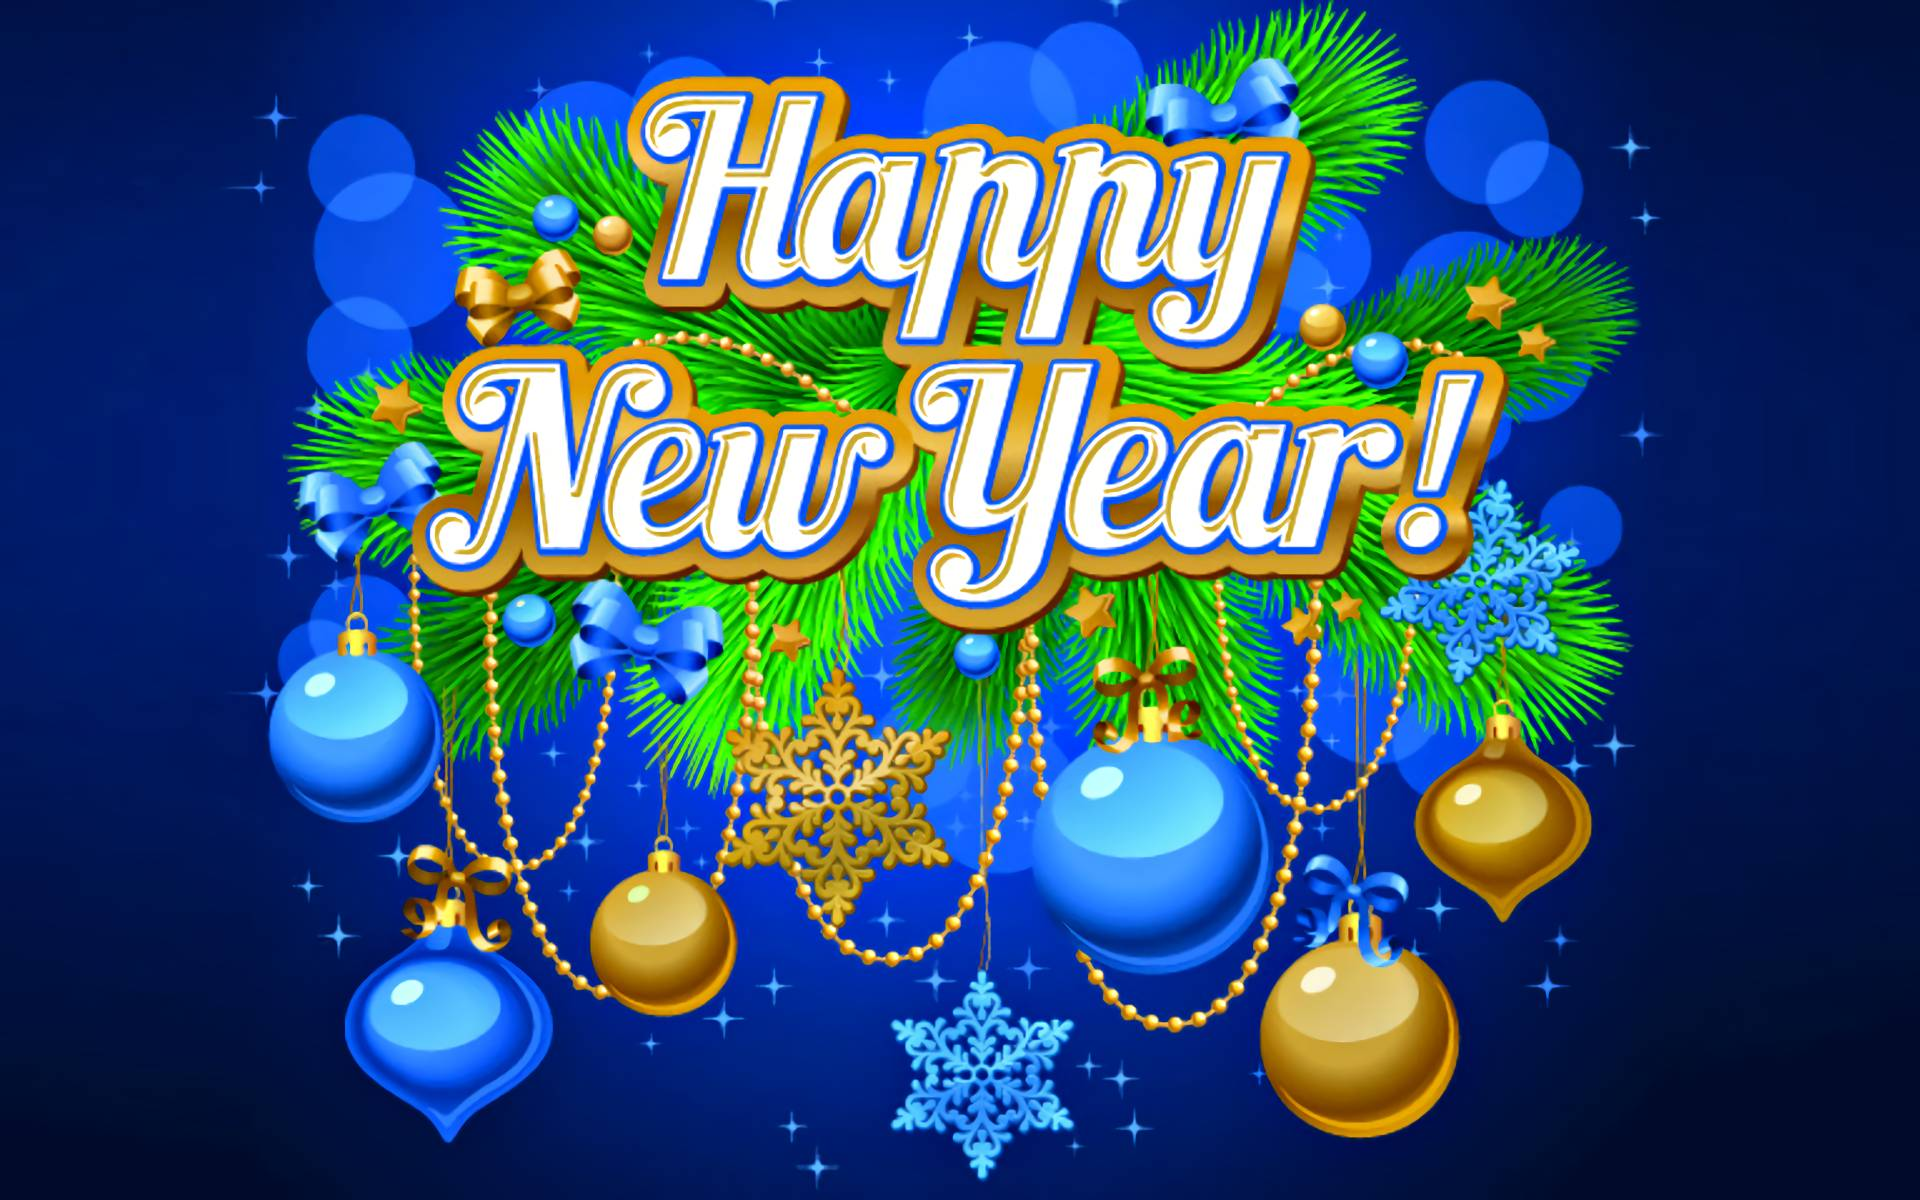 New Year Wallpapers (28 images) - DodoWallpaper.